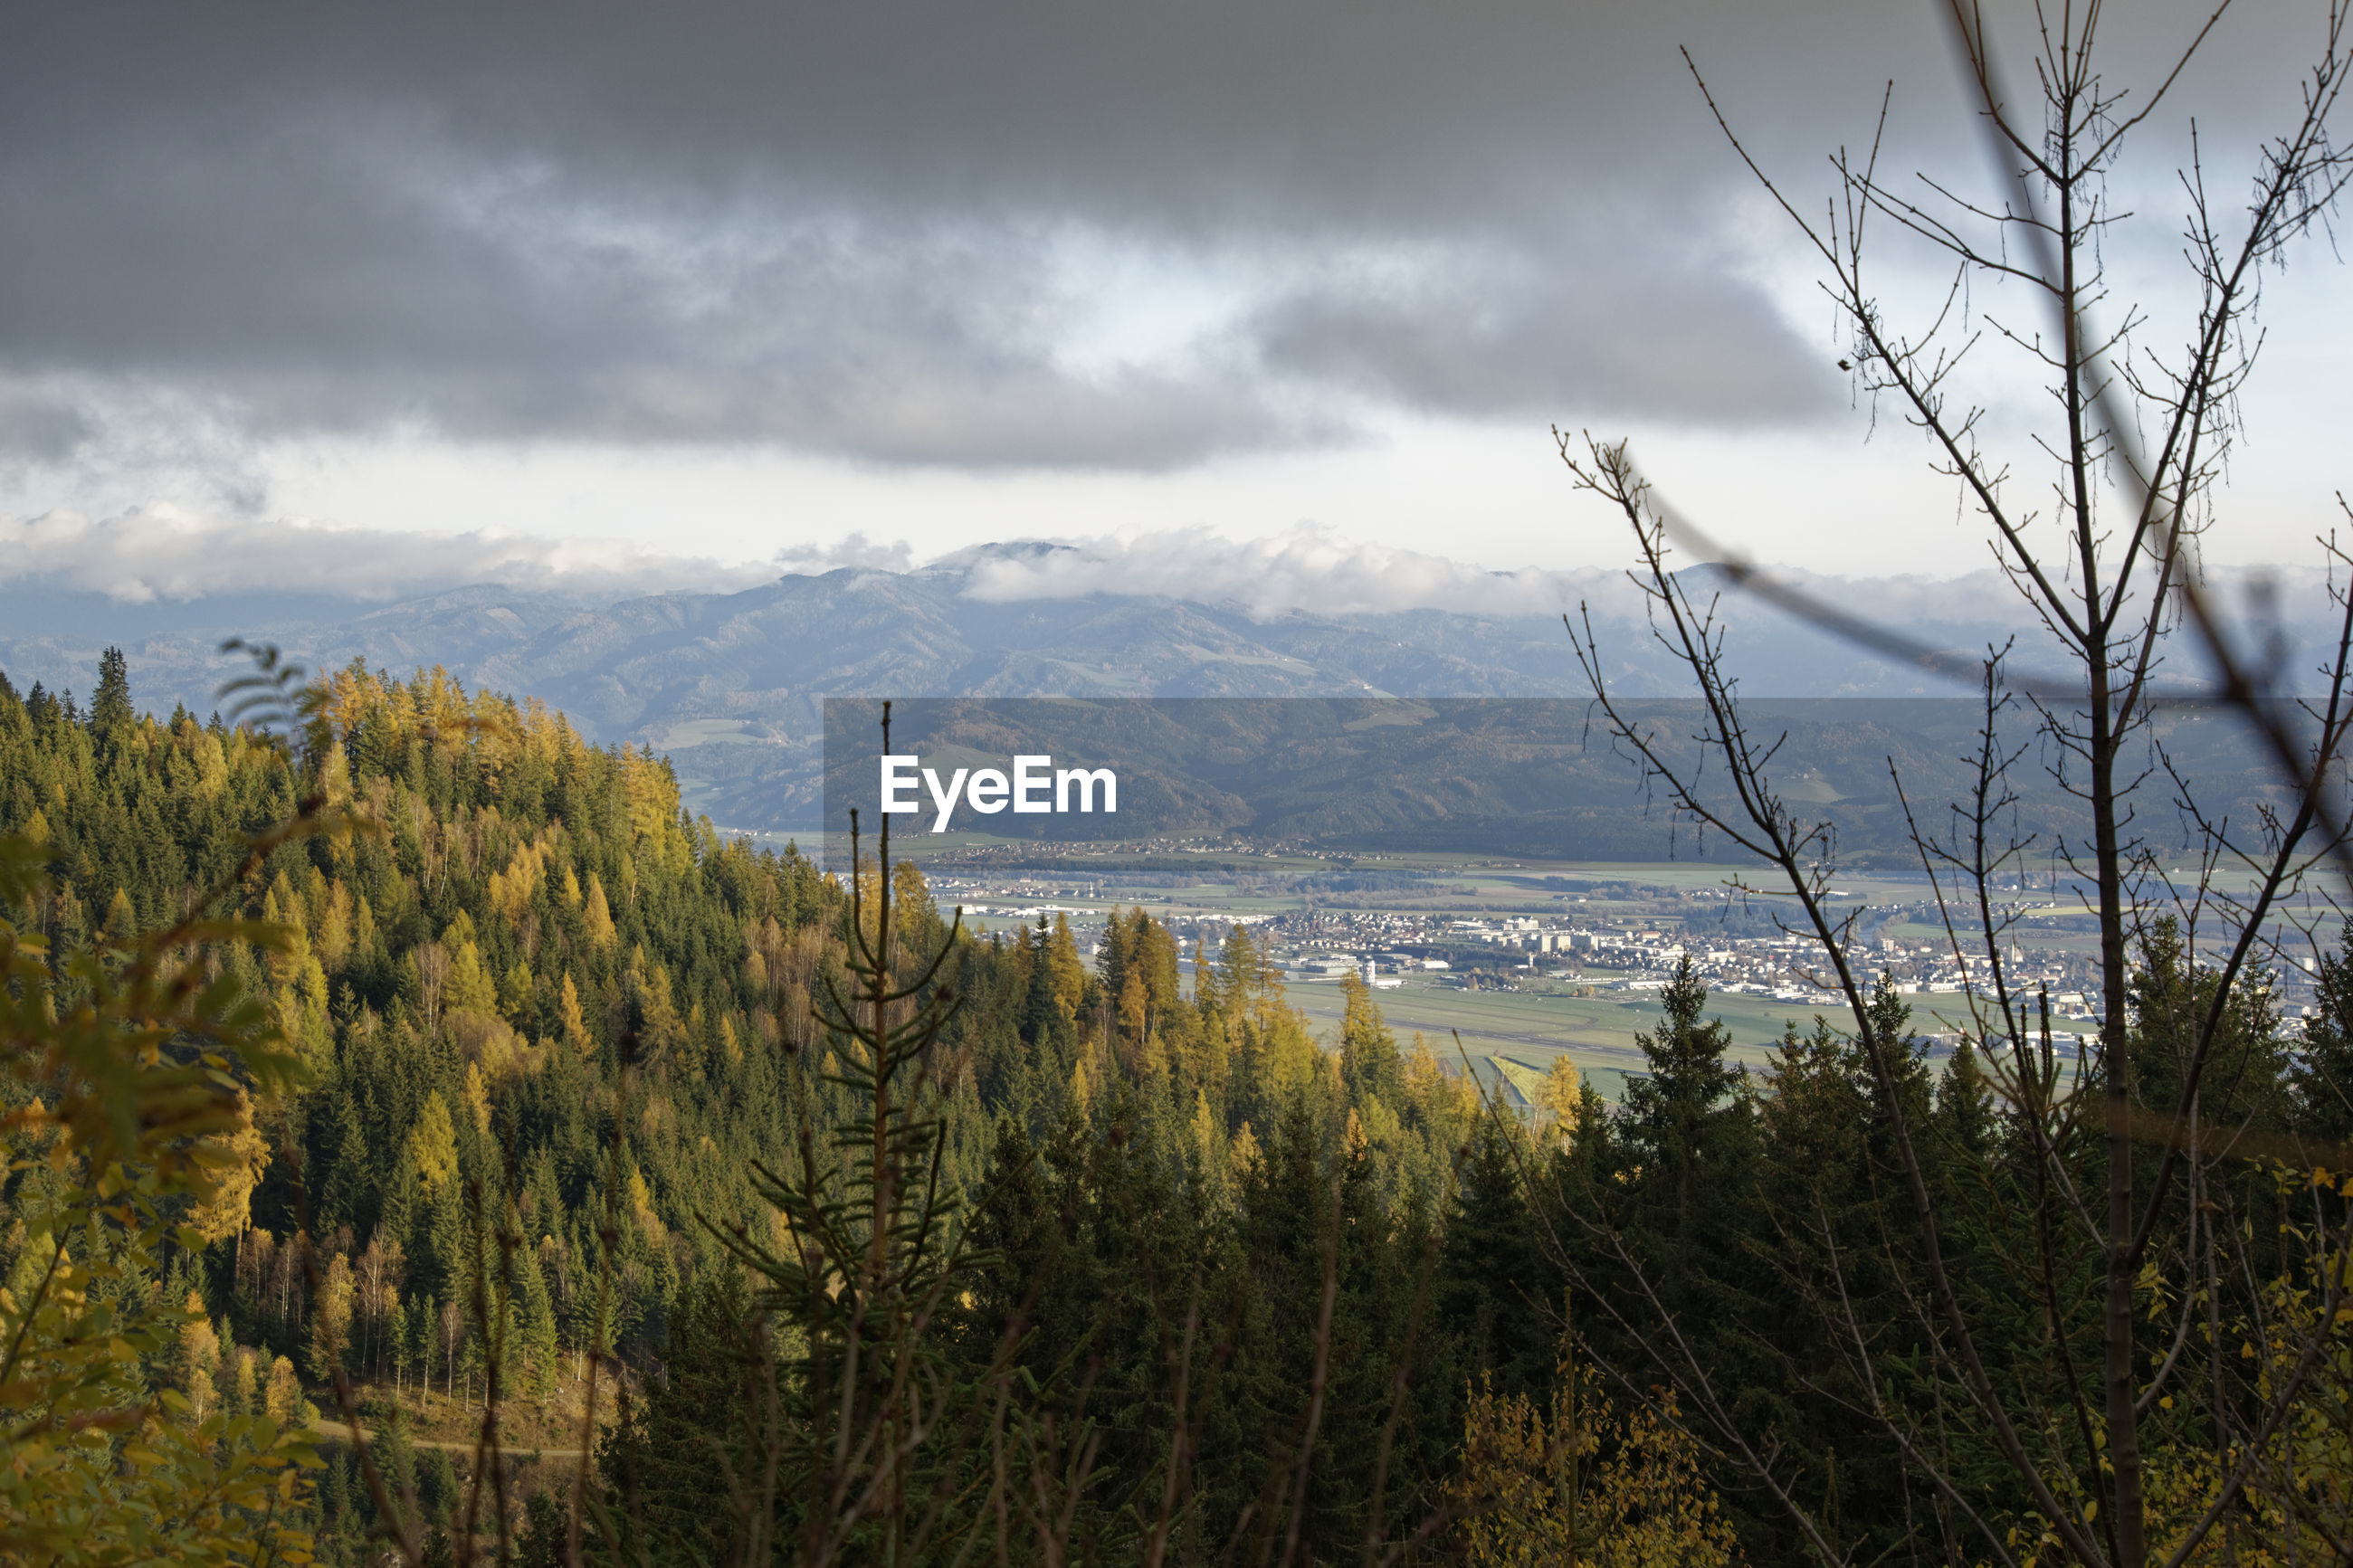 Scenic view of trees and mountains against sky